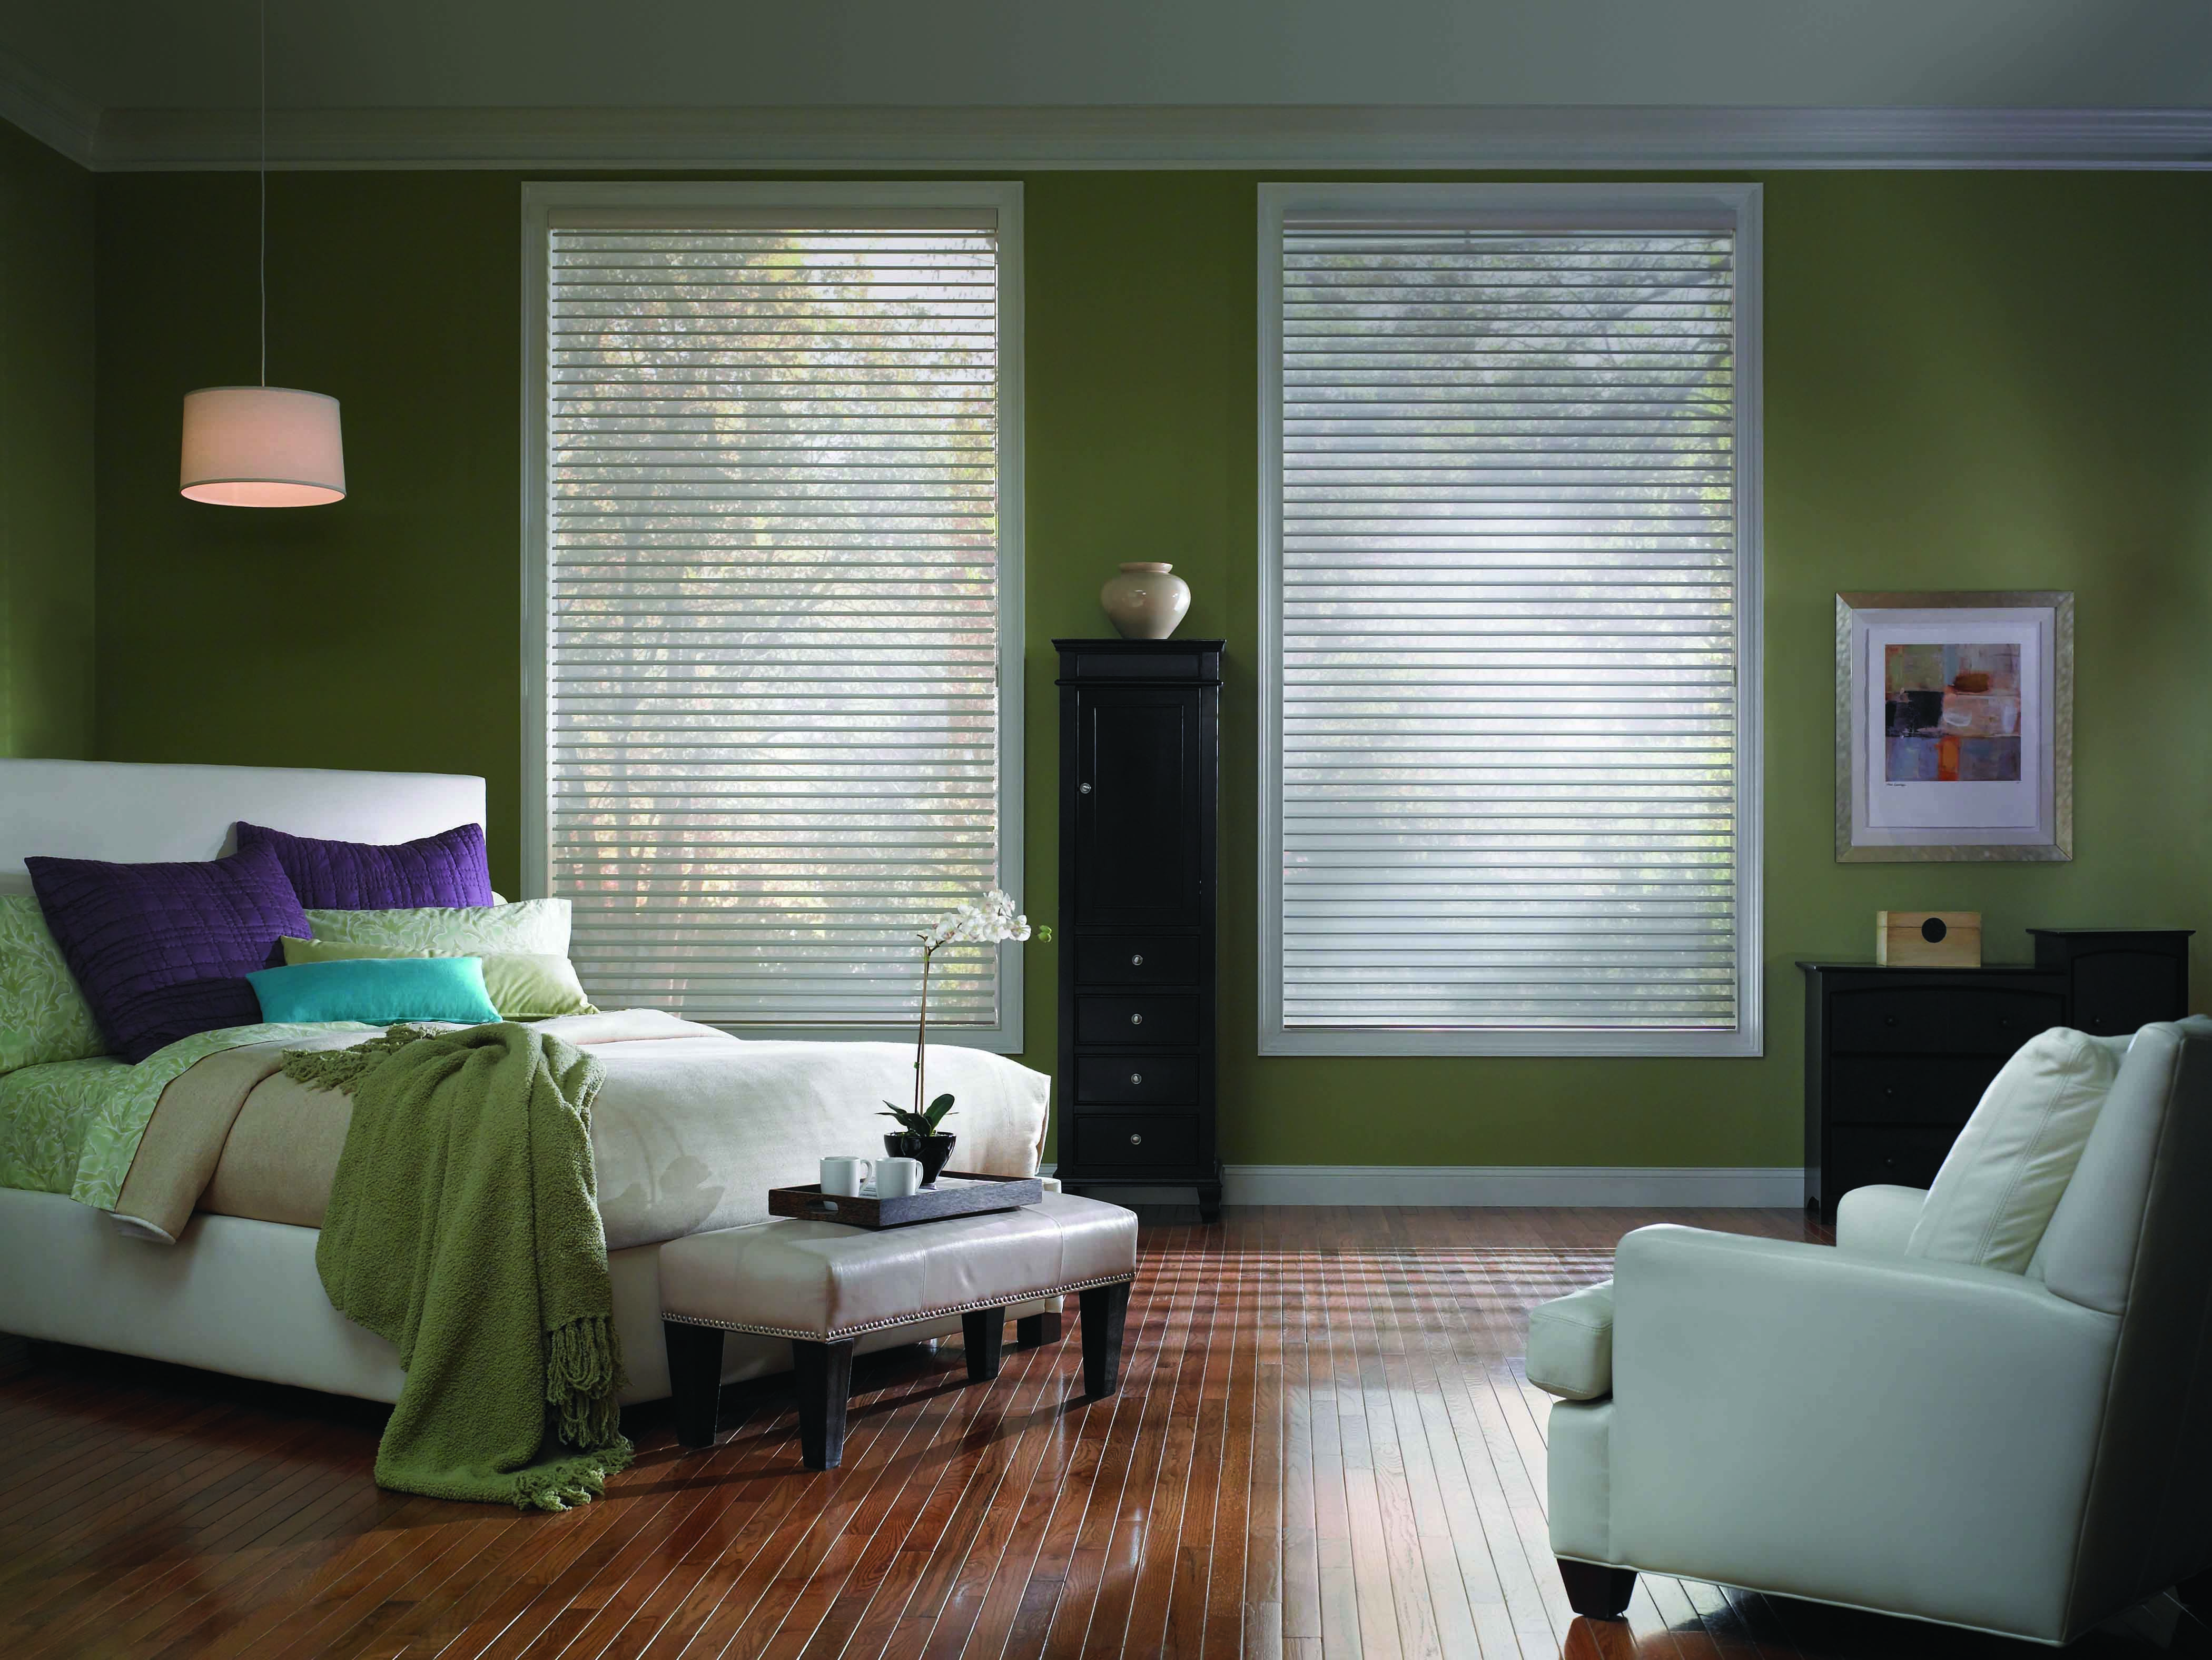 Pin by Borromeo Santiago on IDEAS in 2019 | Electric blinds